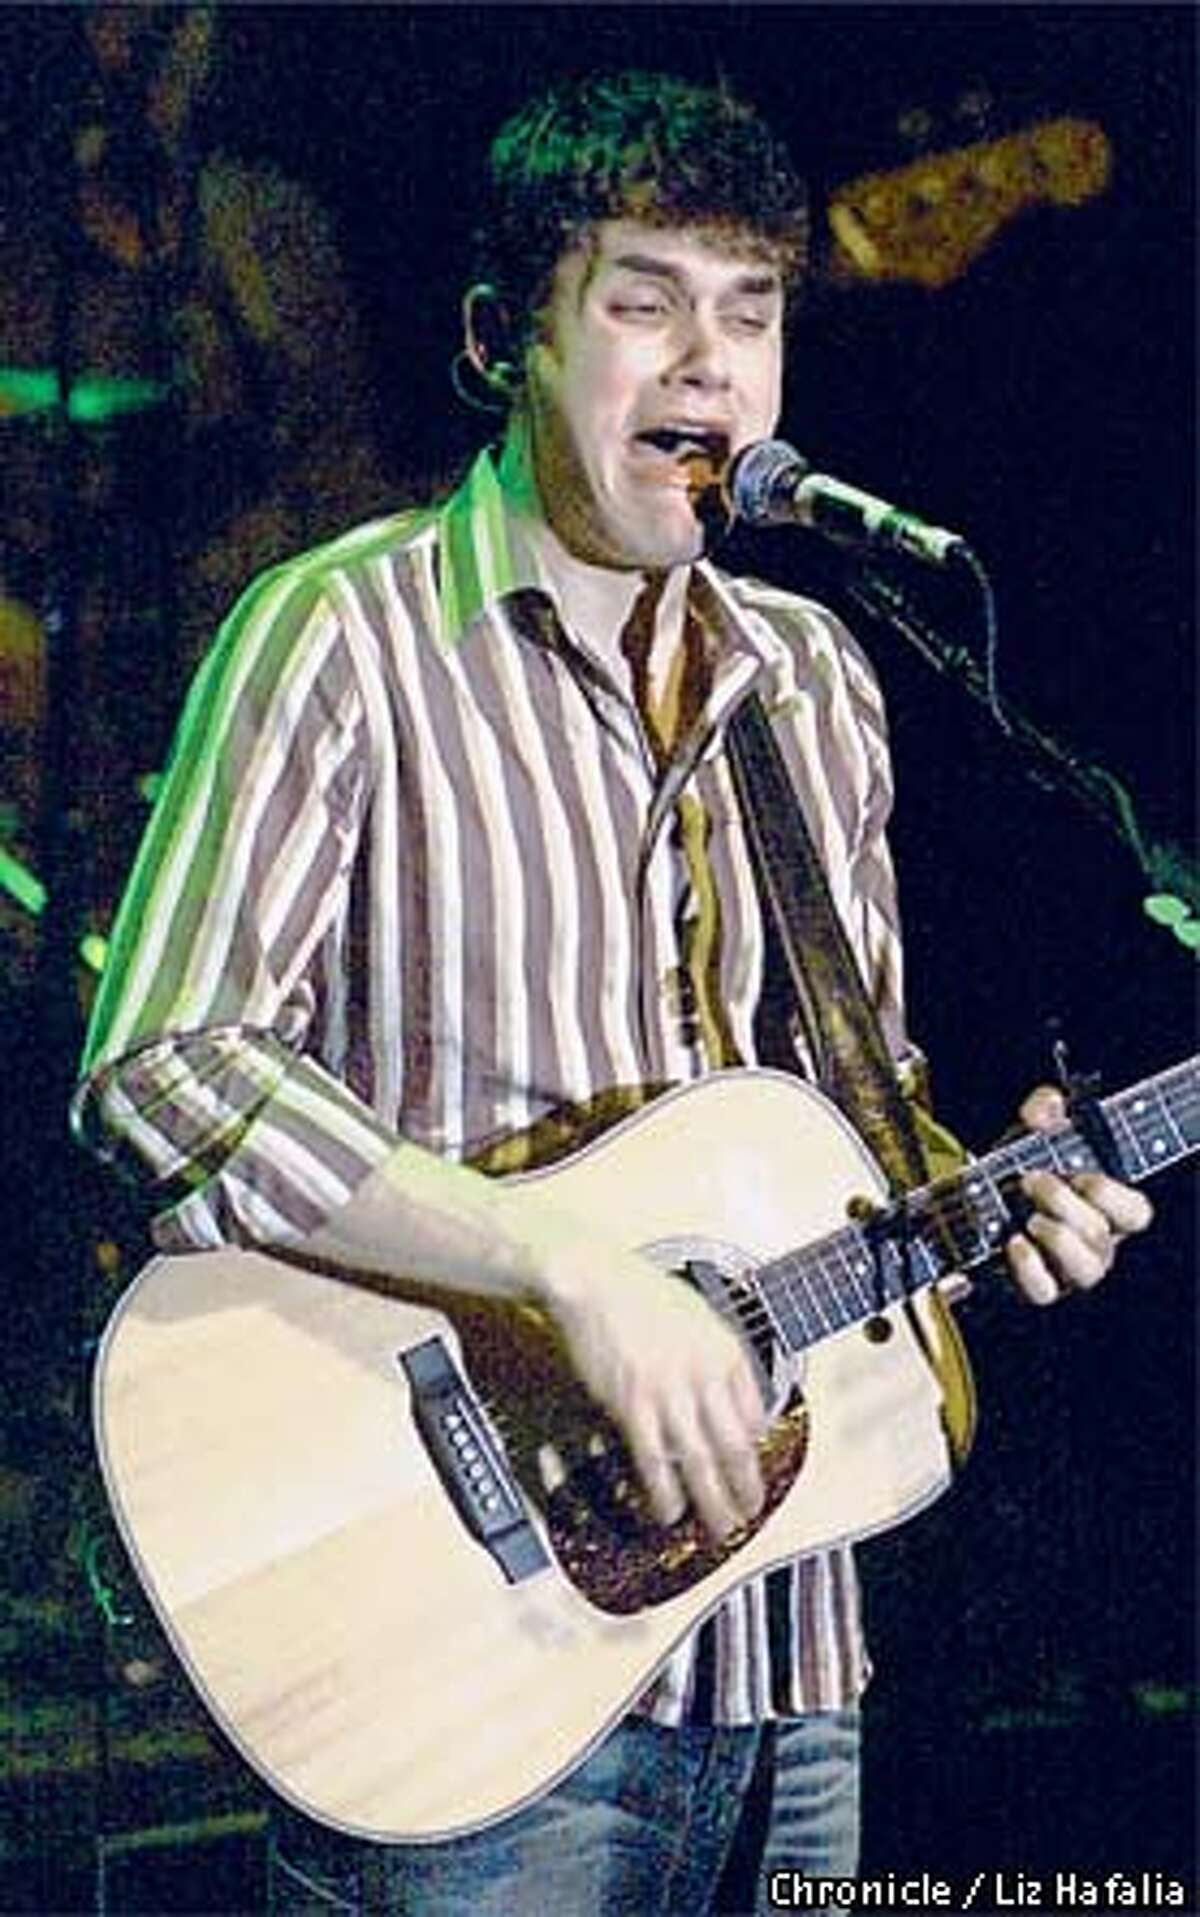 Songwriter John Mayer at the Fillmore. (PHOTOGRAPHED BY LIZ HAFALIA/THE SAN FRANCISCO CHRONICLE)